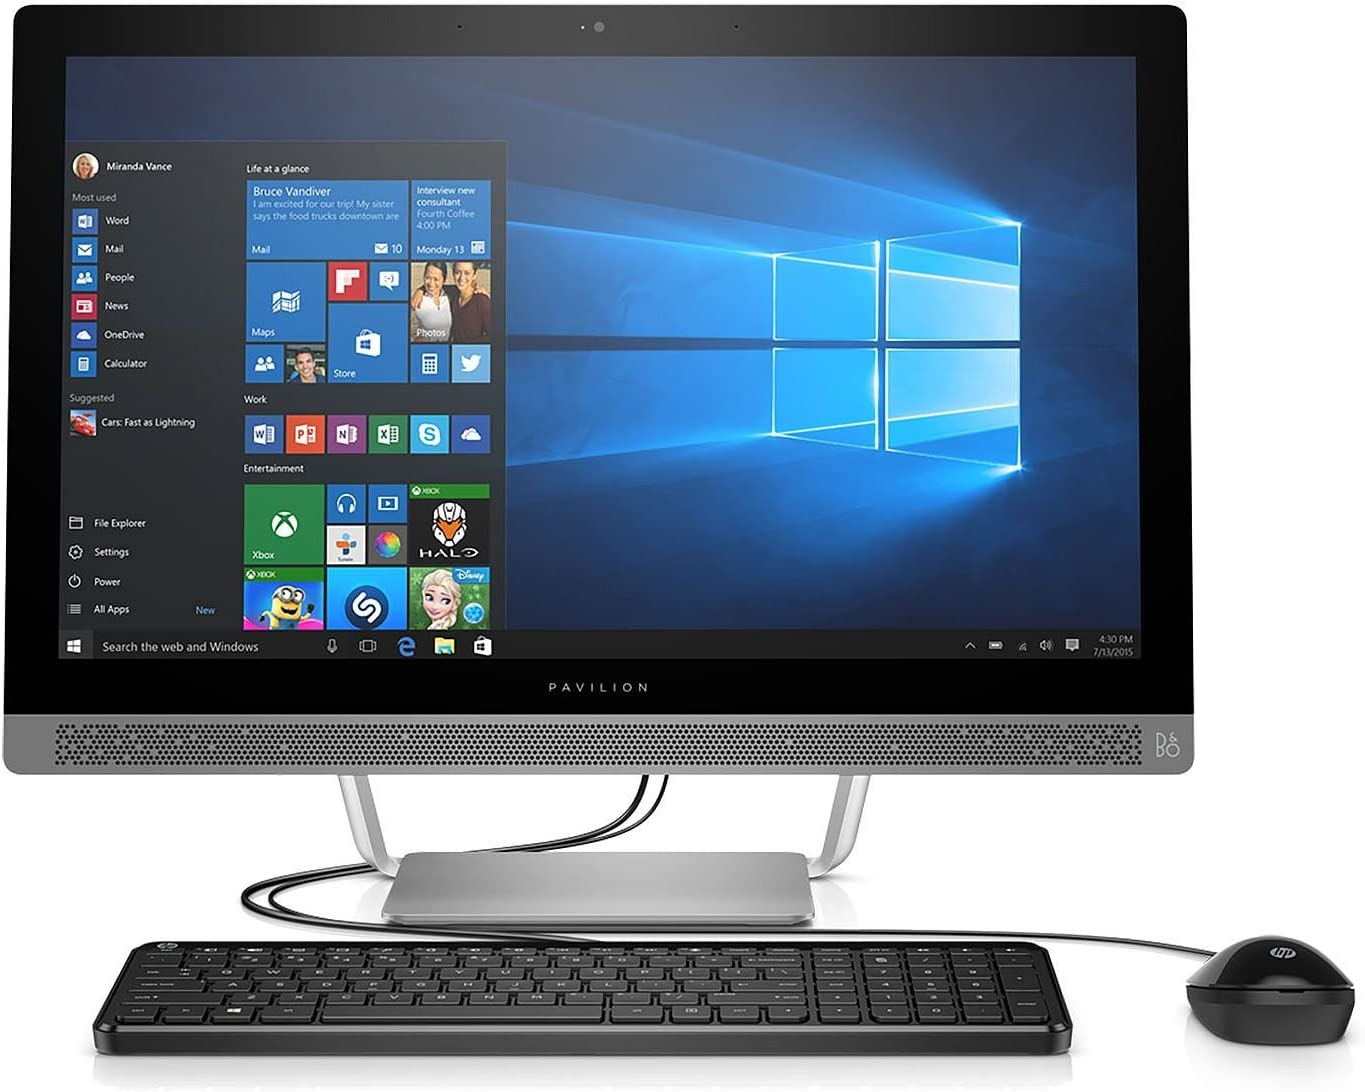 "2017 HP Pavilion Full HD IPS 27"" Touchscreen All-in-One Desktop, Quad Core Intel i7-6700T 2.8 GHz, 16GB DDR4 RAM, 1TB 7200RPM HDD, Dedicated Graphics 2GB GDDR5, DVD, Bluetooth, HDMI, 802.11AC, Win10"